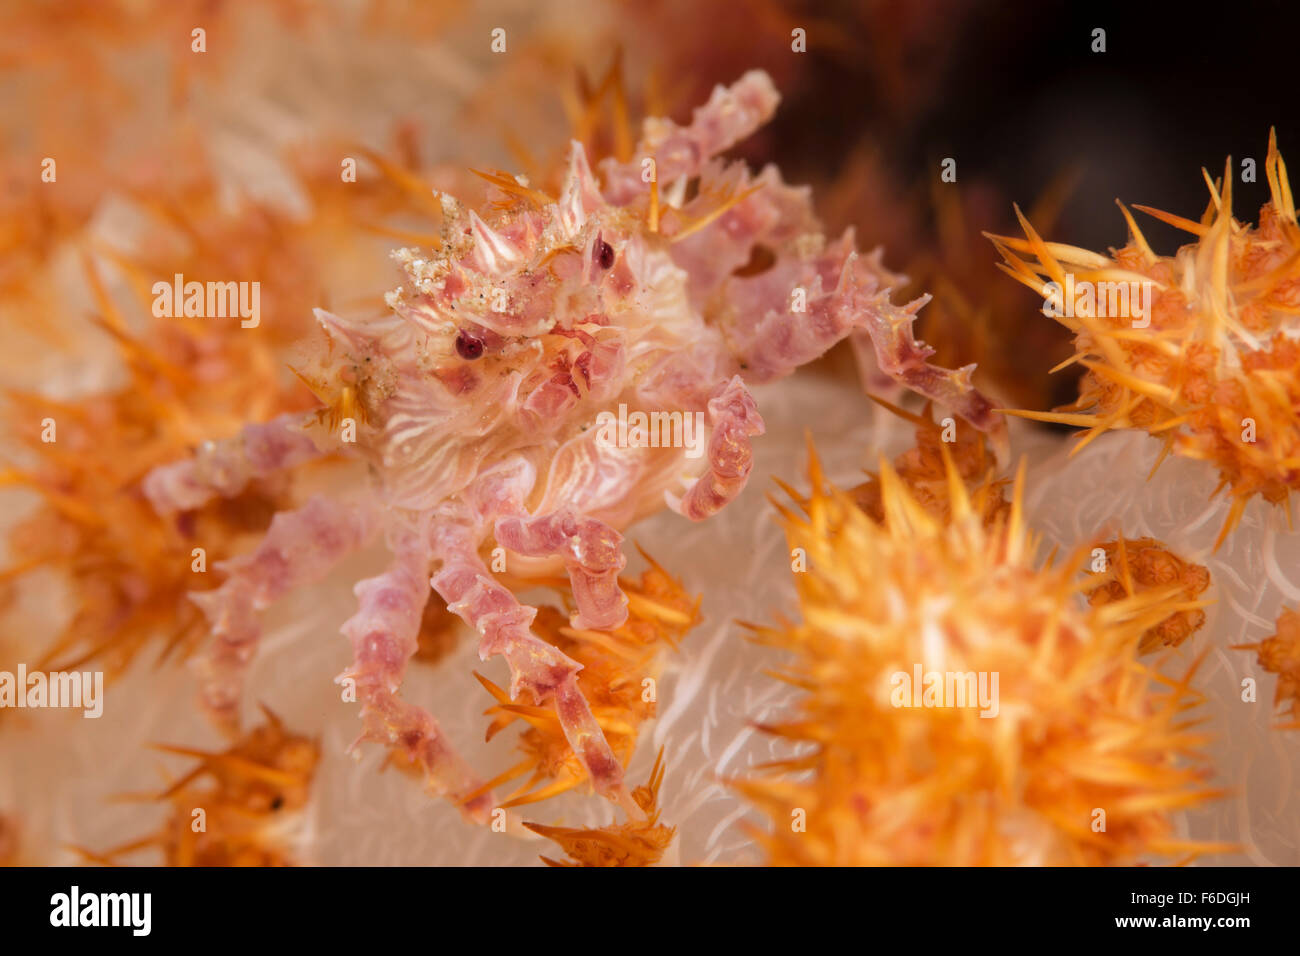 Soft Coral Crab, Hoplophrys oatesii, Alor, Indonesia - Stock Image